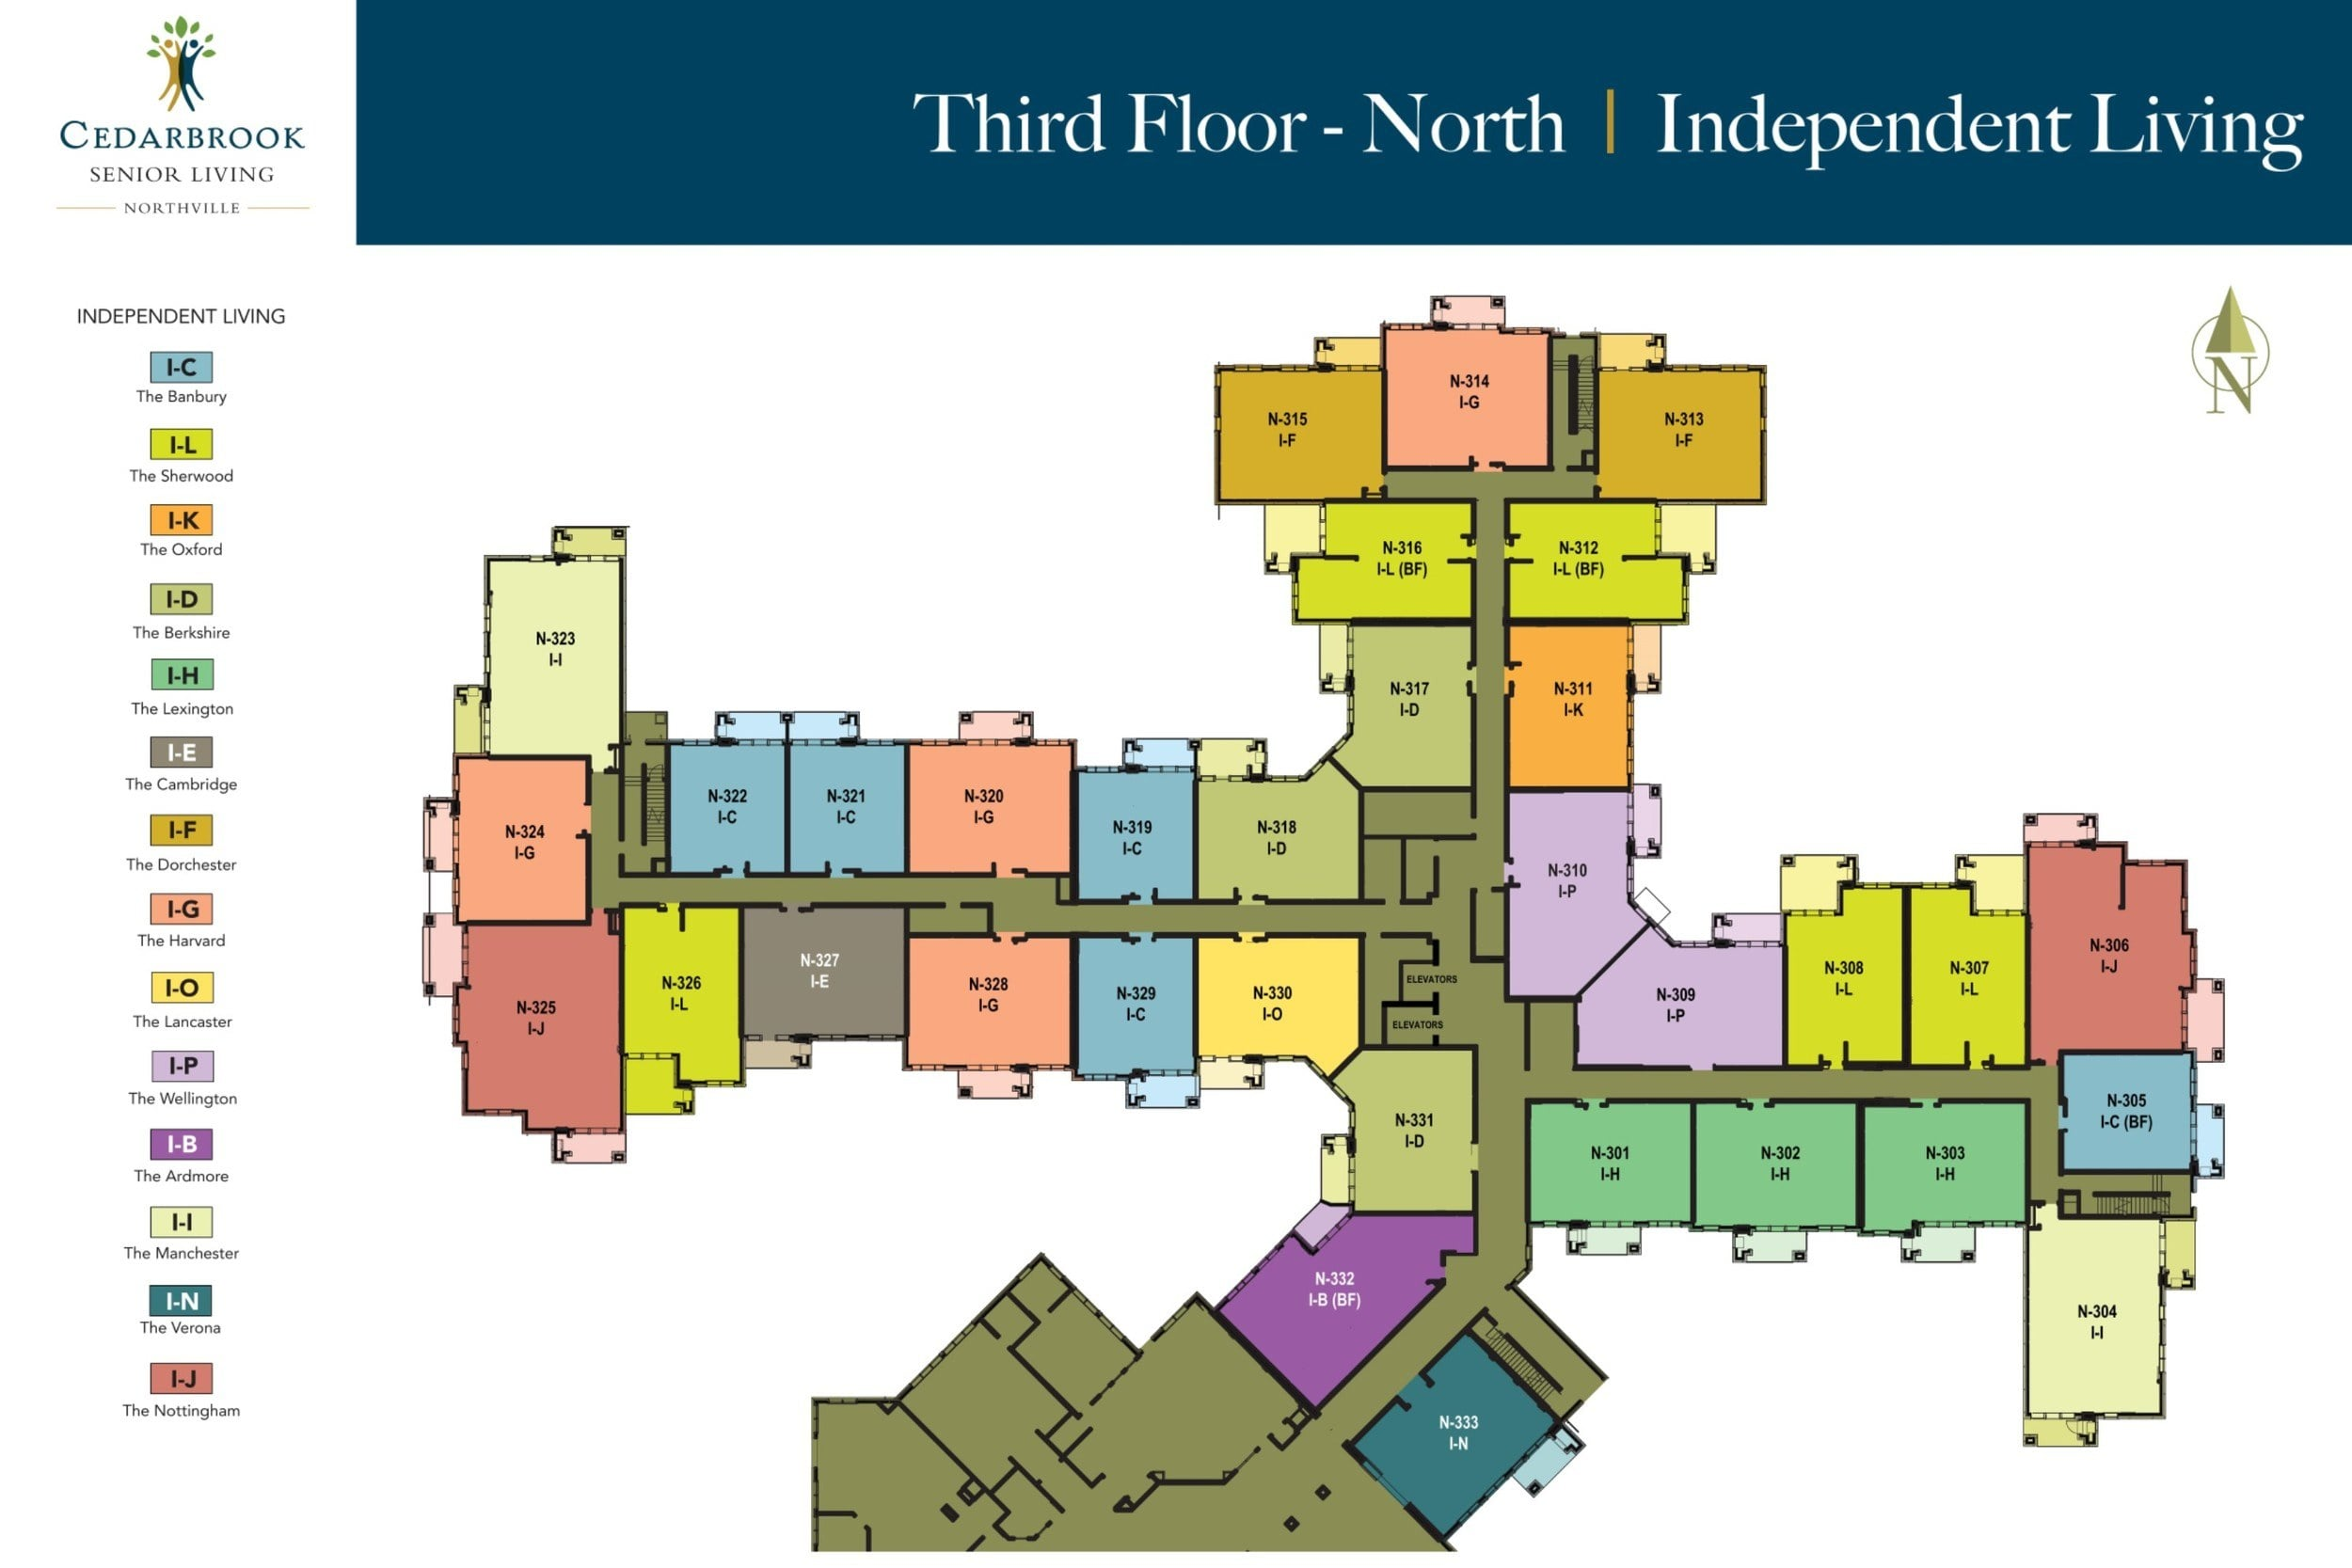 Third Floor North - Independent Living